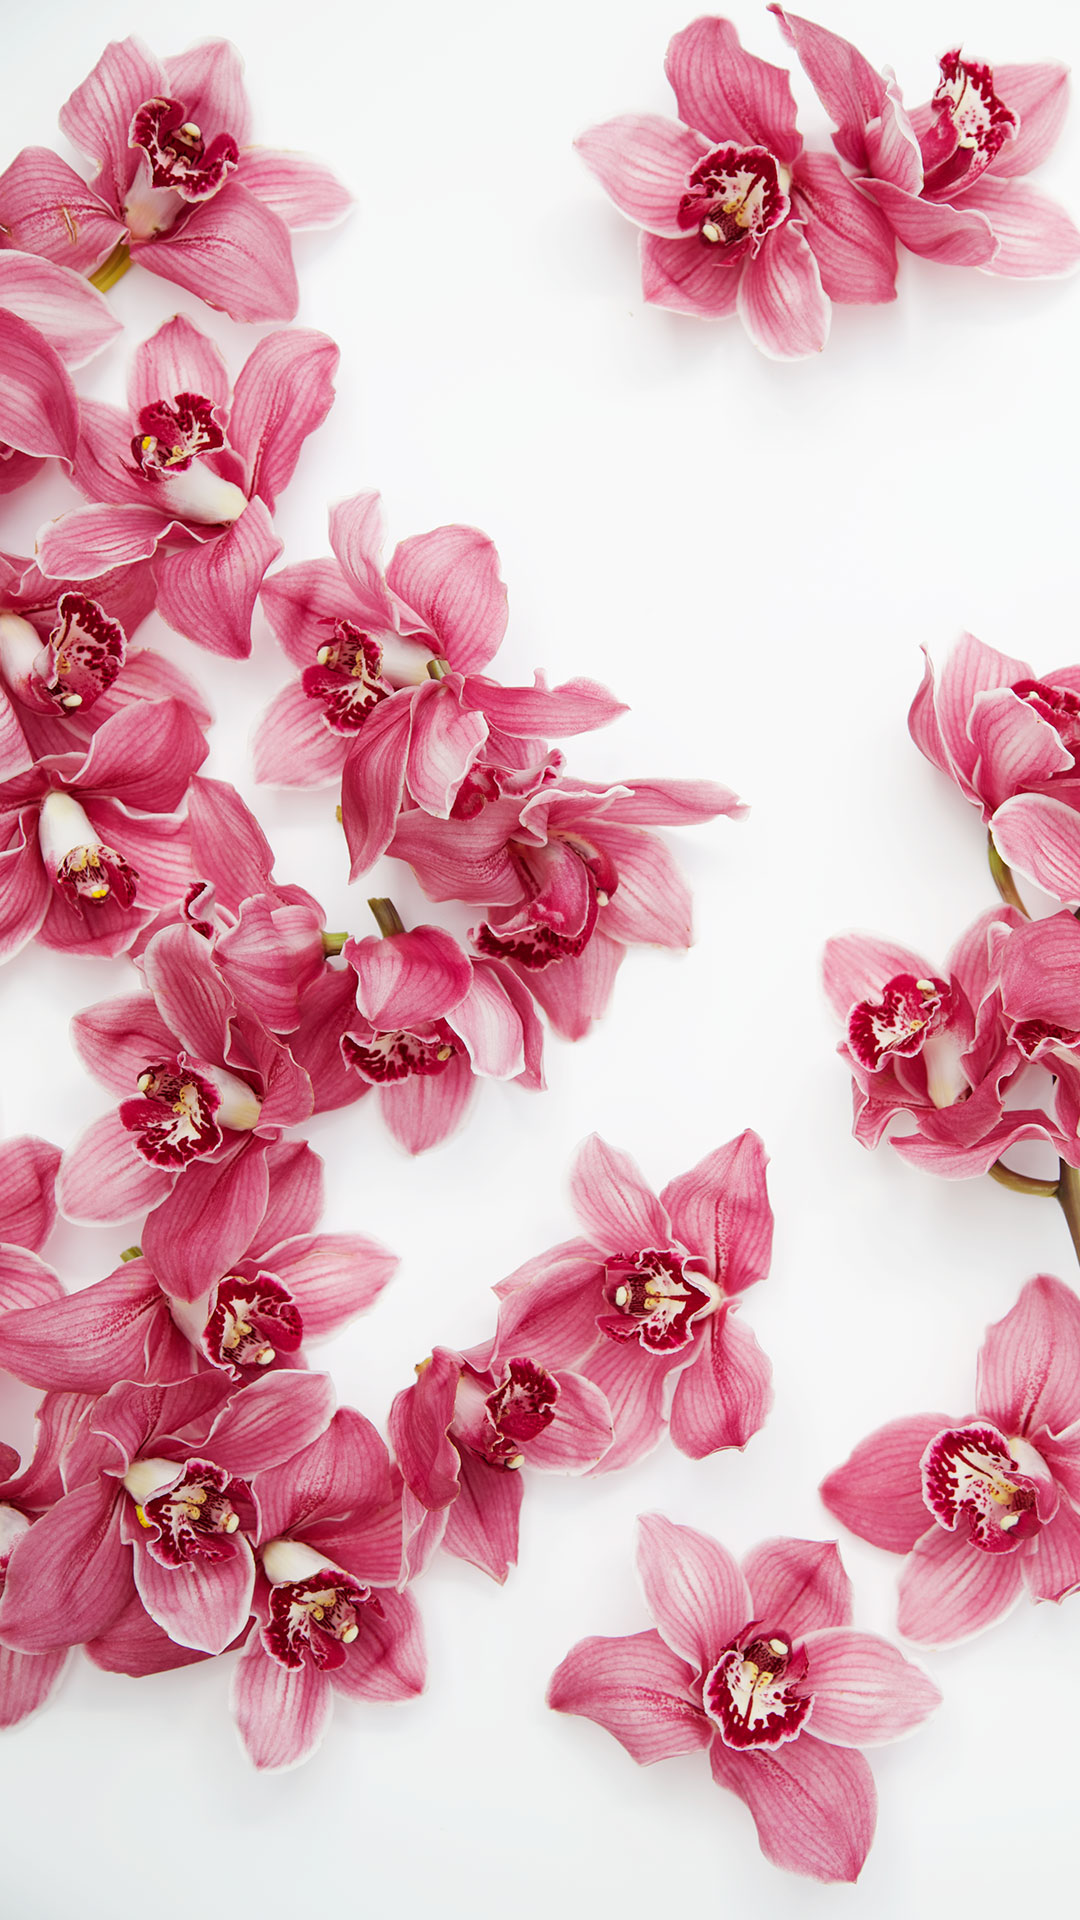 Free Floral Wallpaper And Capturingcolour Spring Blooms